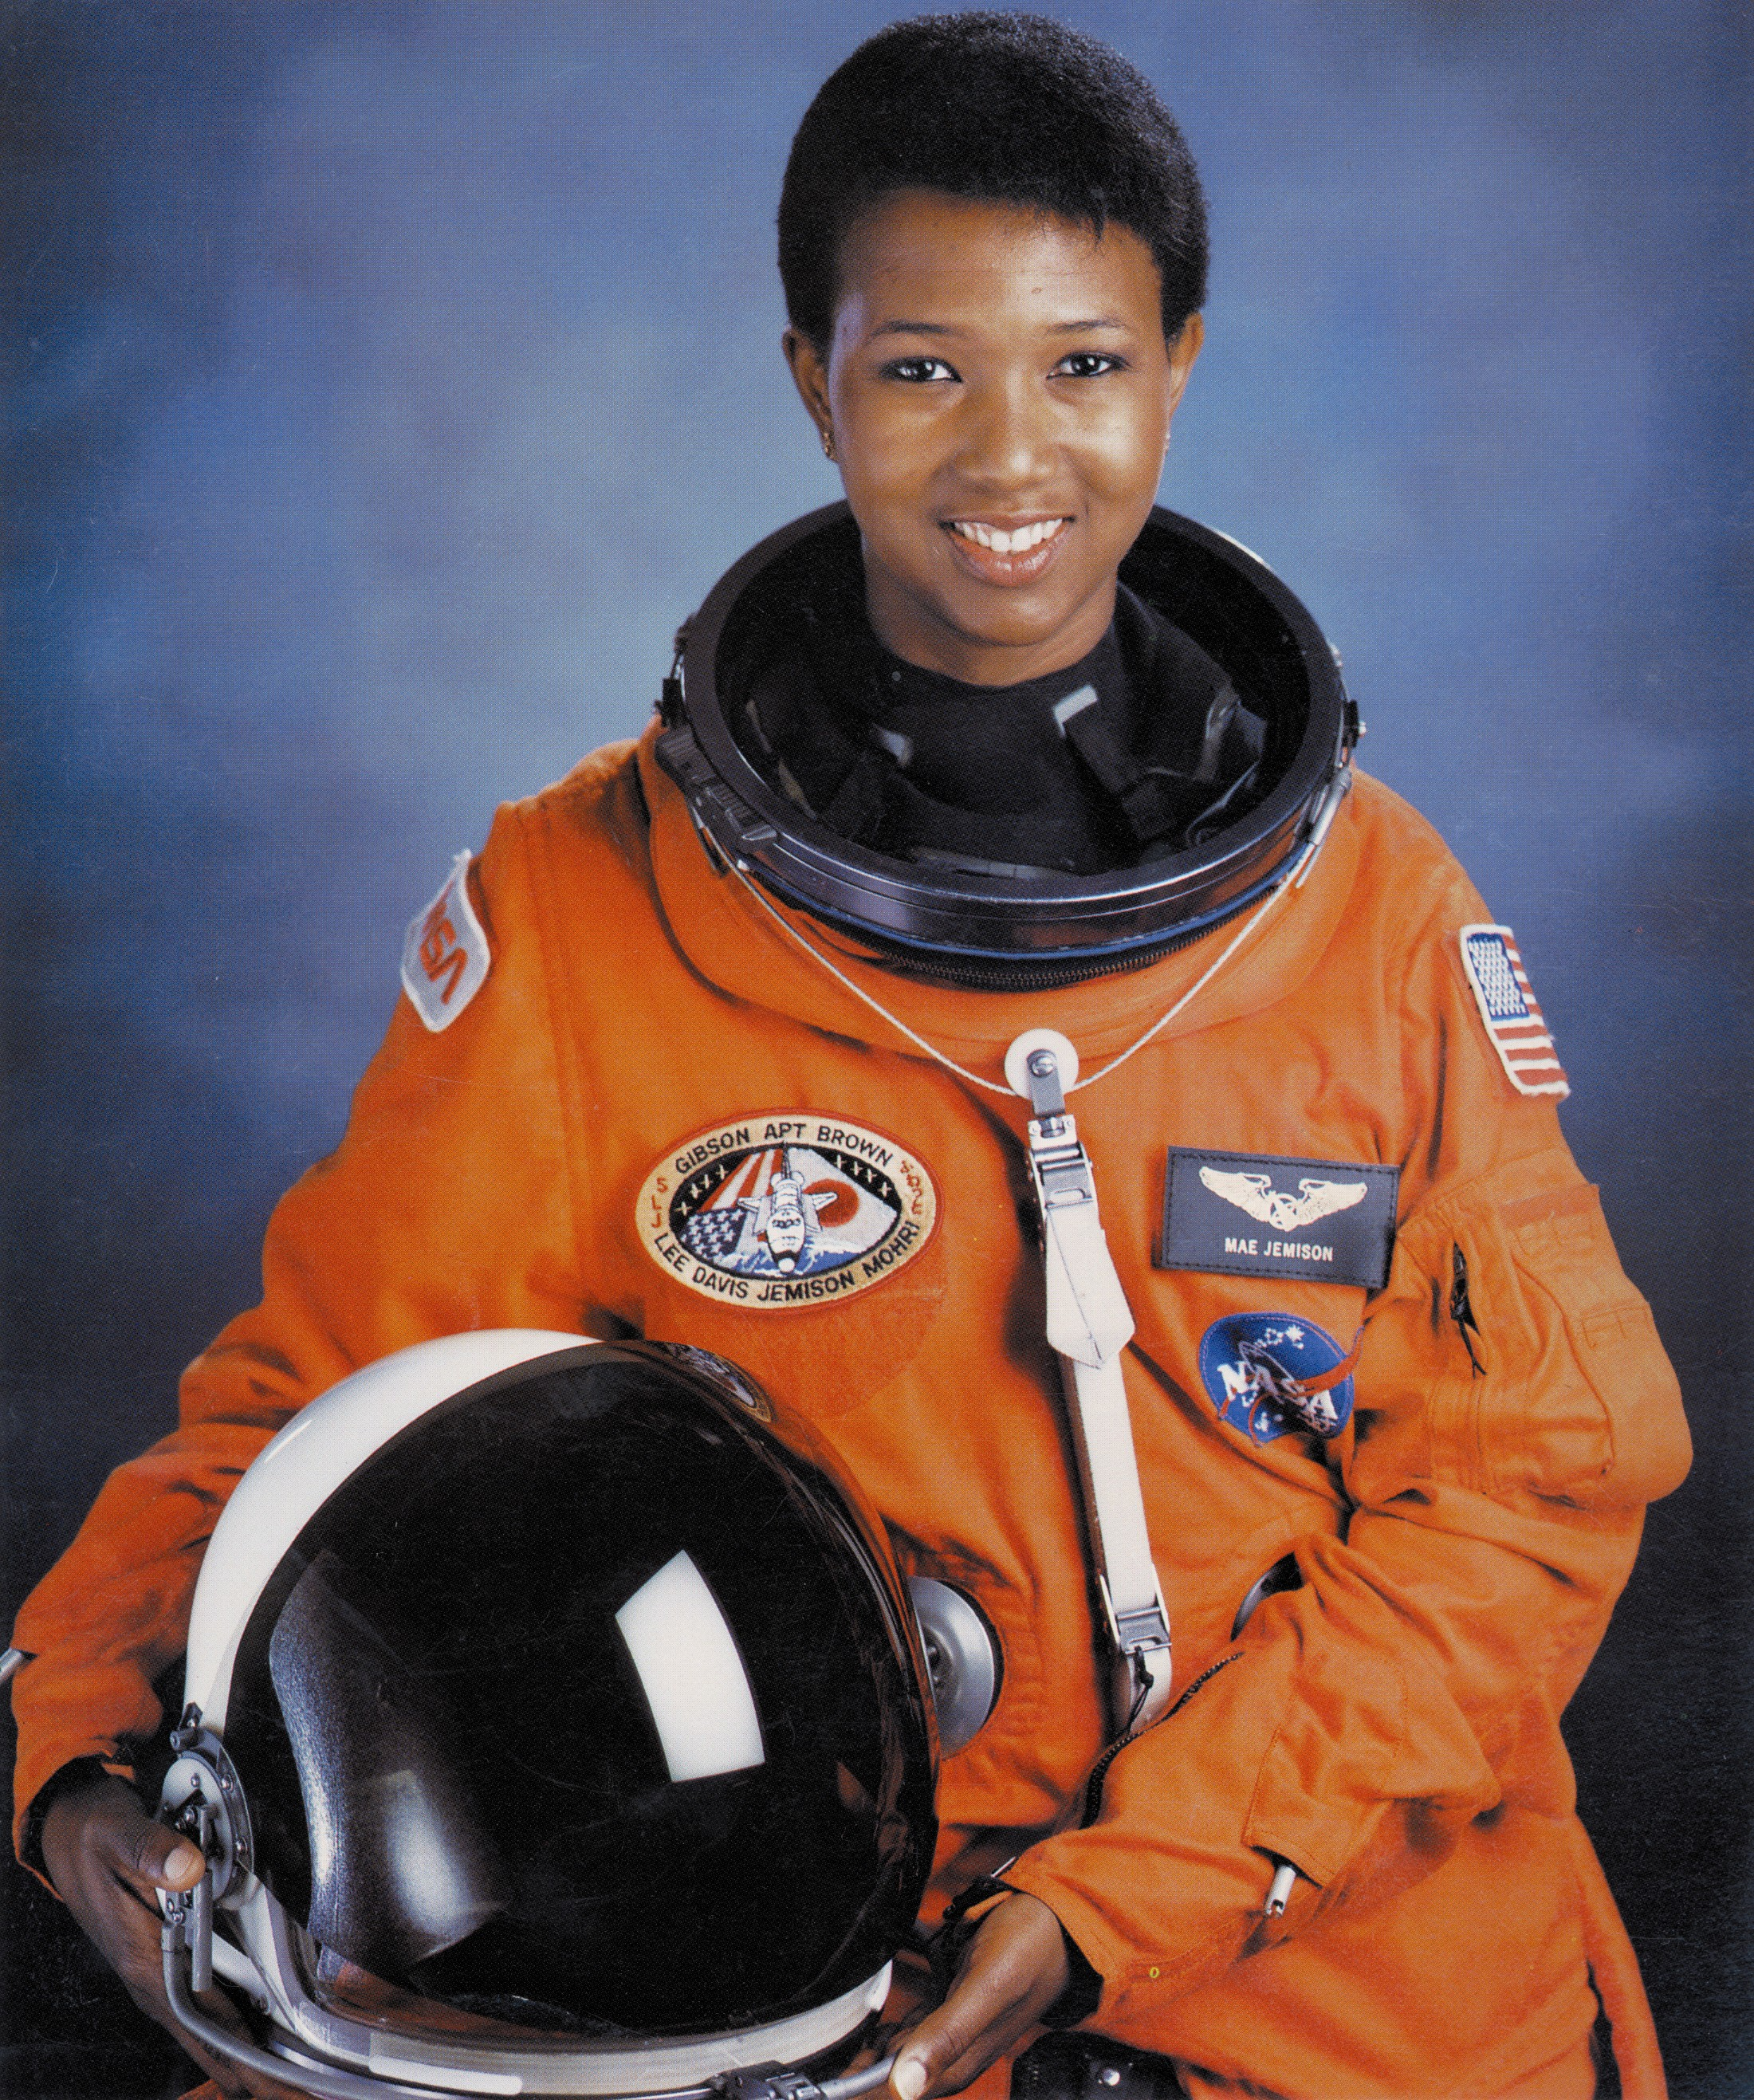 Dr._Mae_C._Jemison_First_African-American_Woman_in_Space_-_GPN-2004-00020-1.jpg